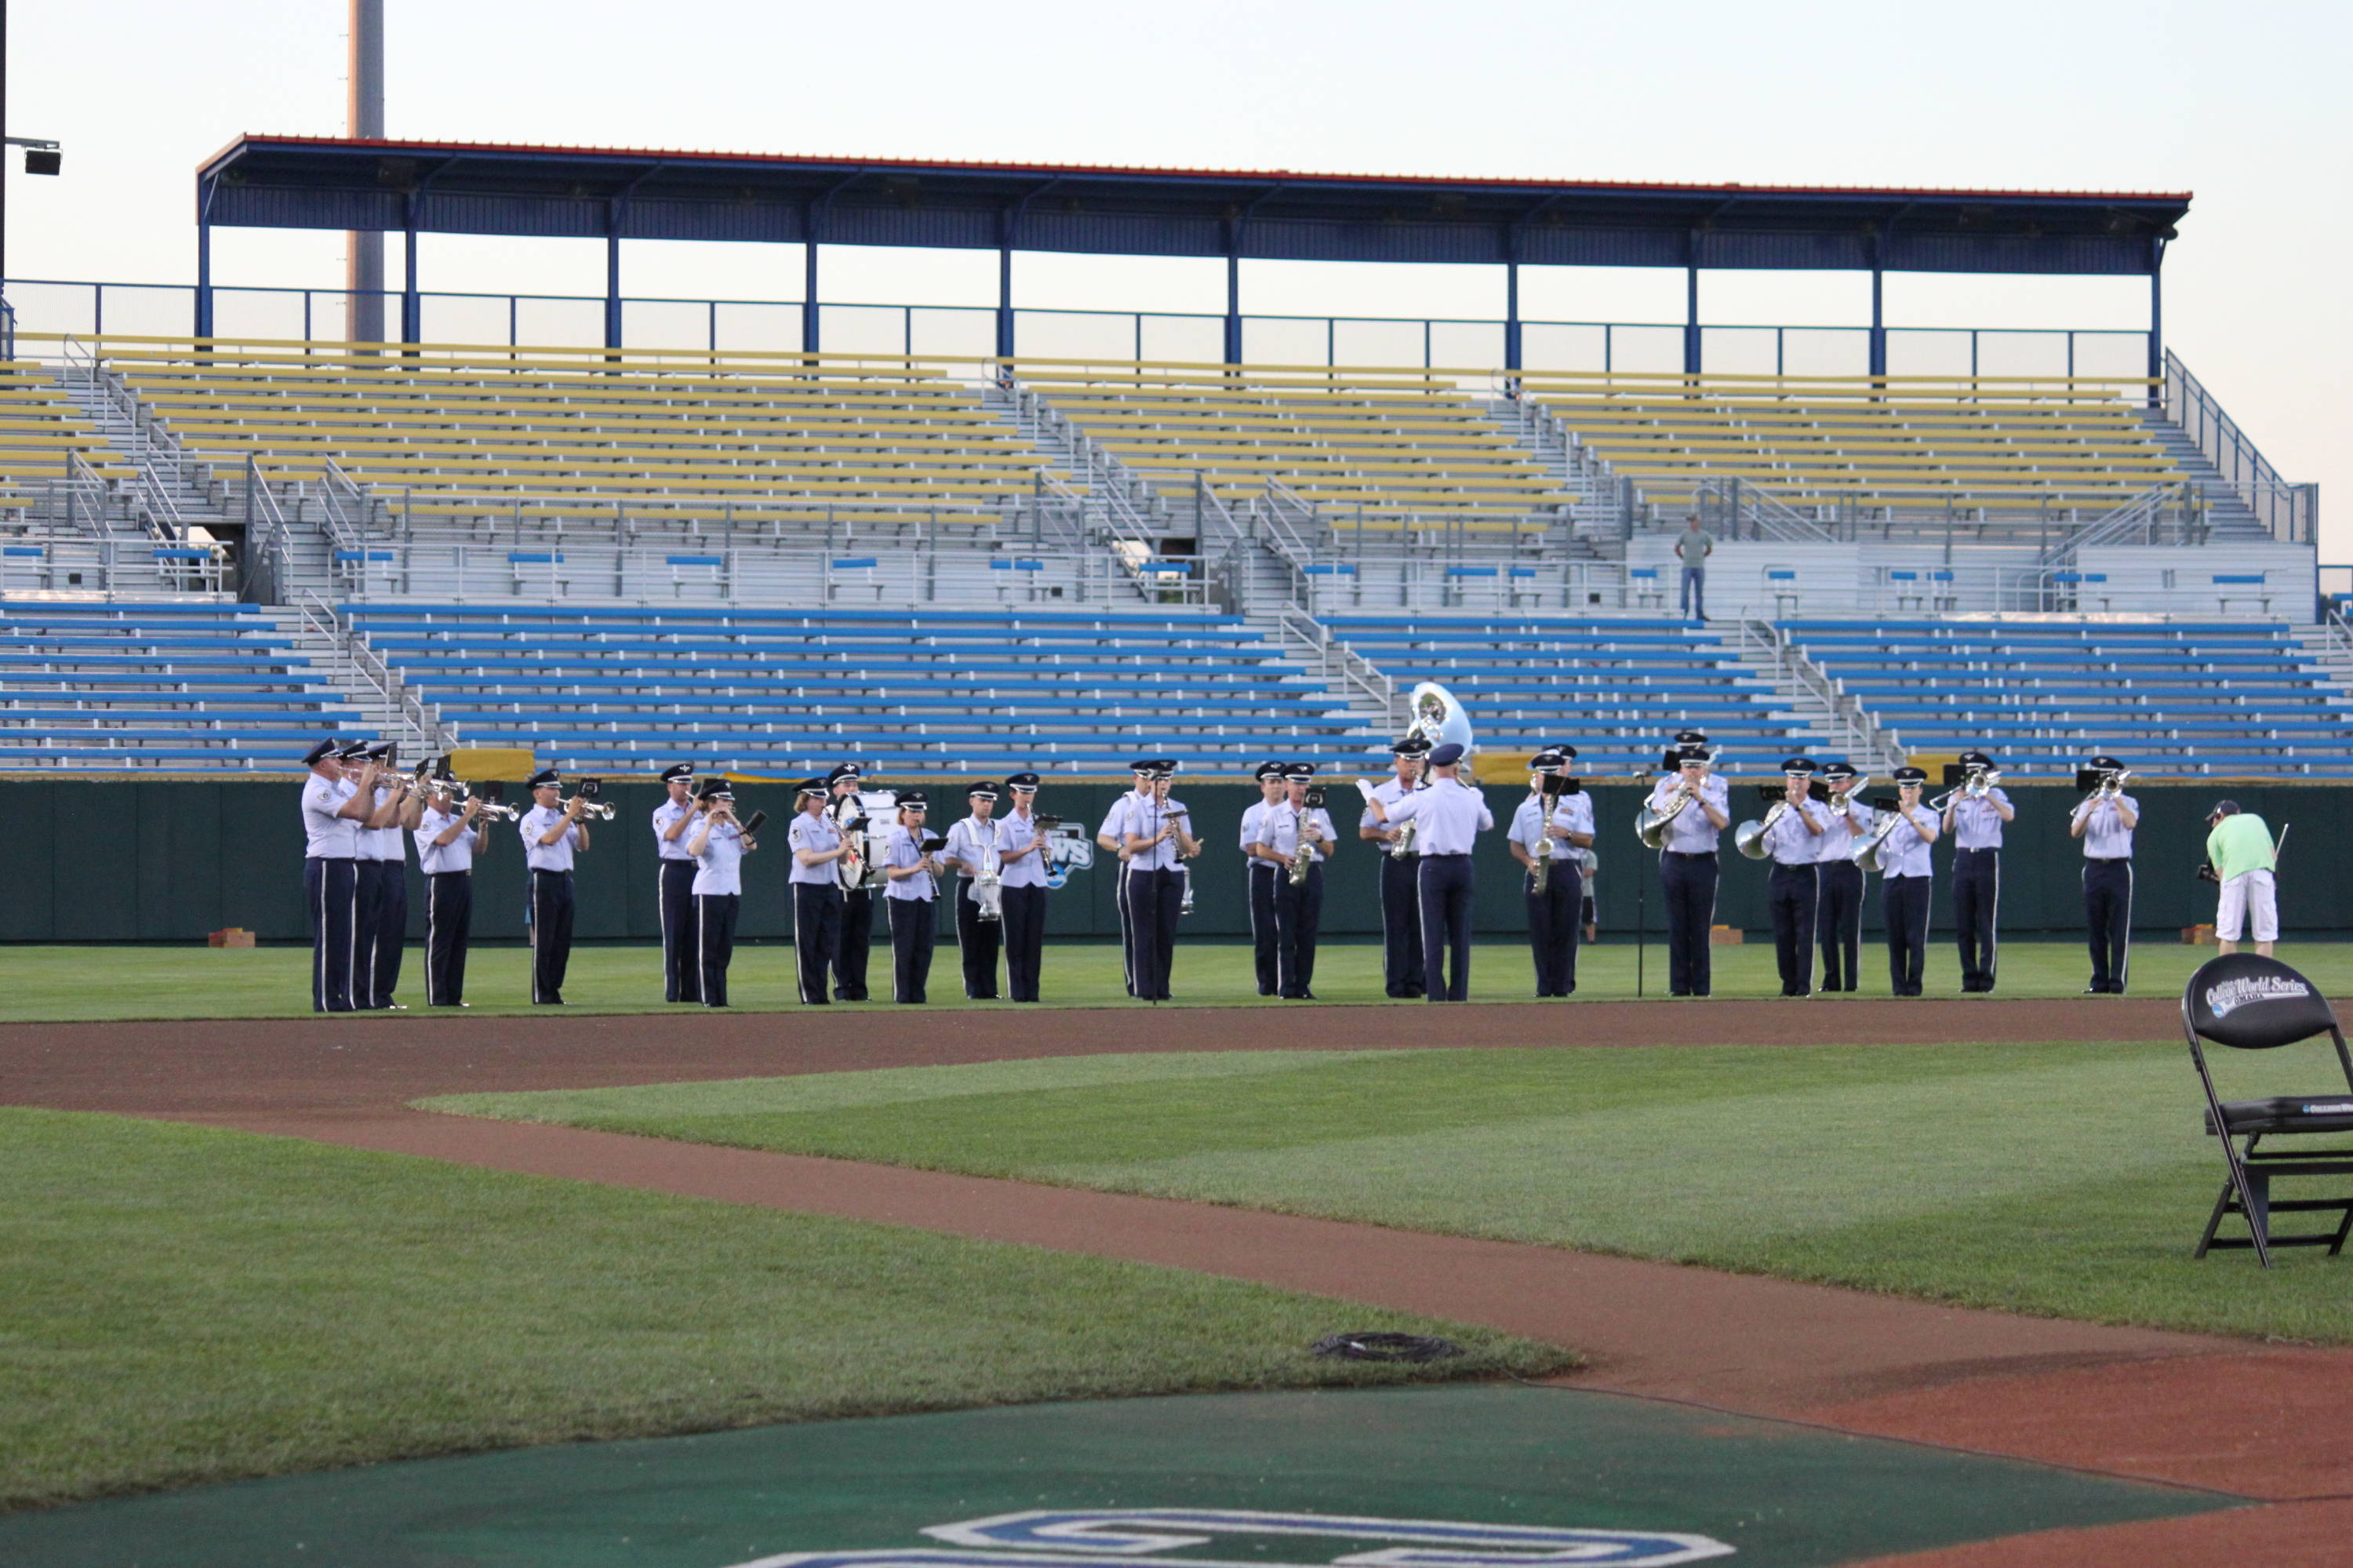 2010 CWS Opening Ceremony